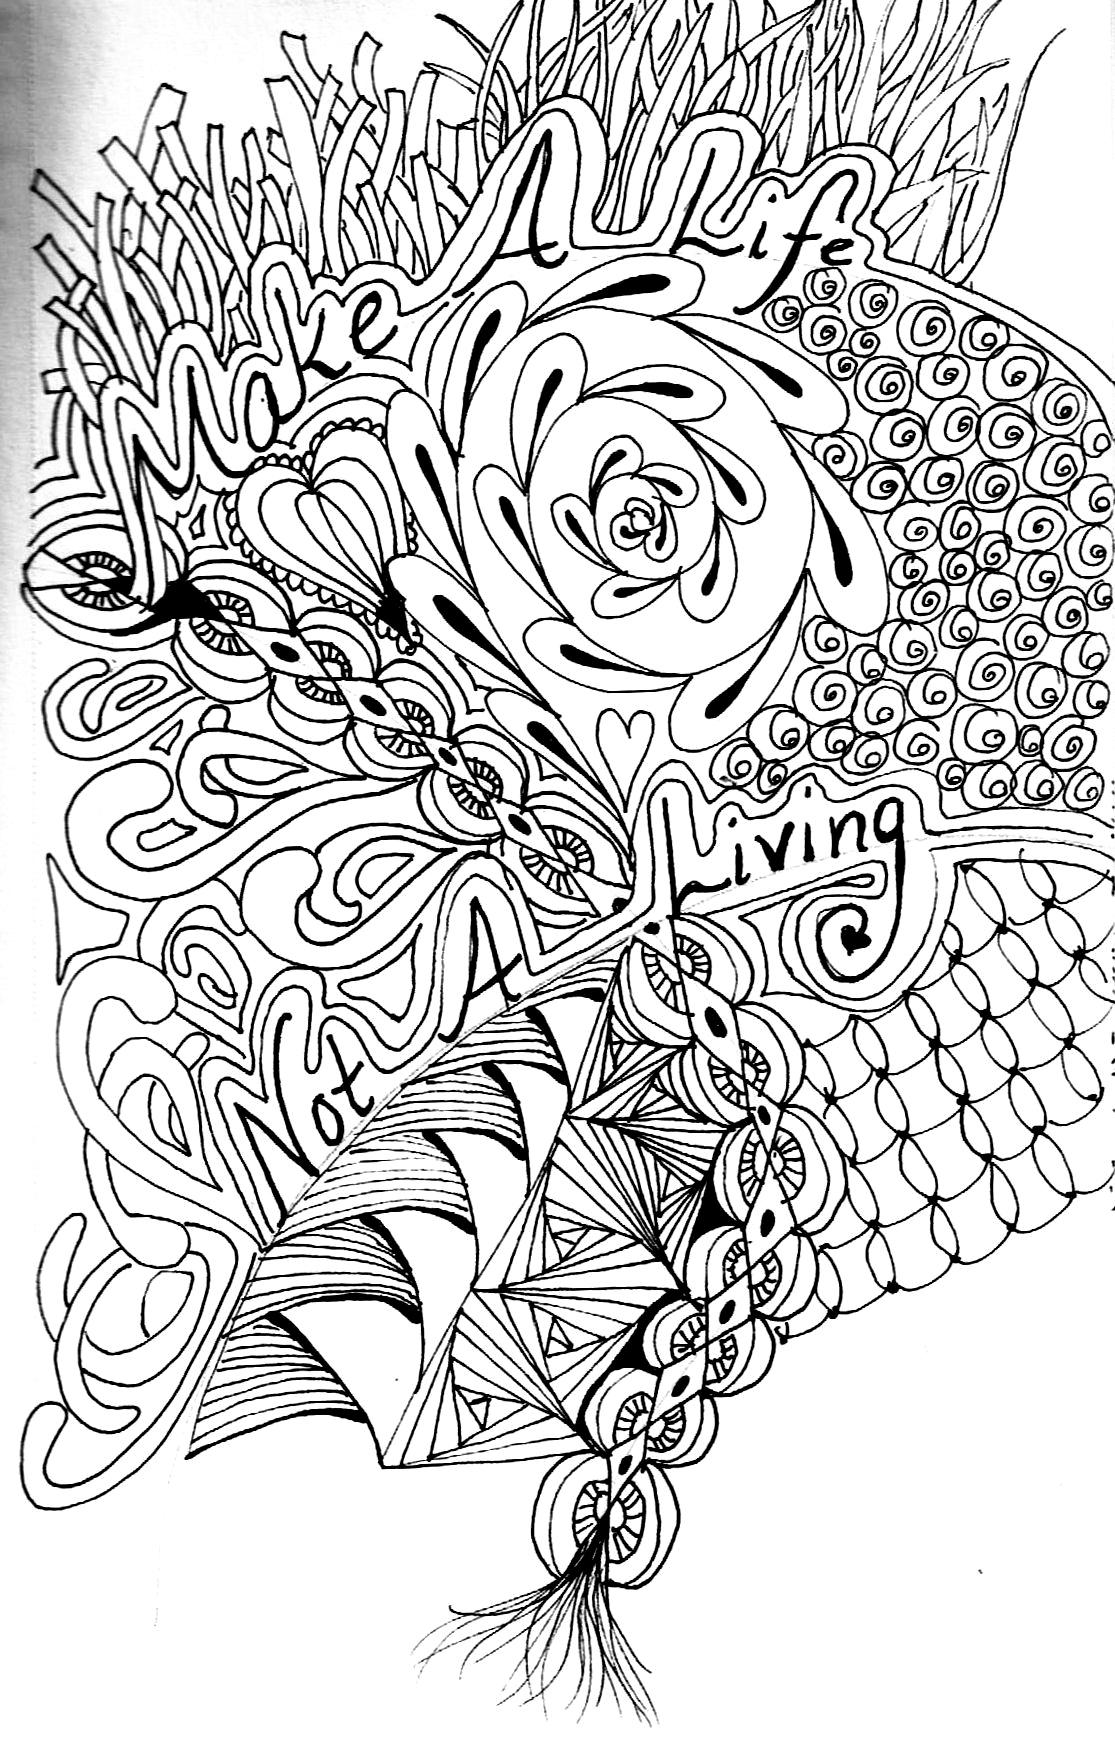 coloring images flounder coloring pages to download and print for free coloring images